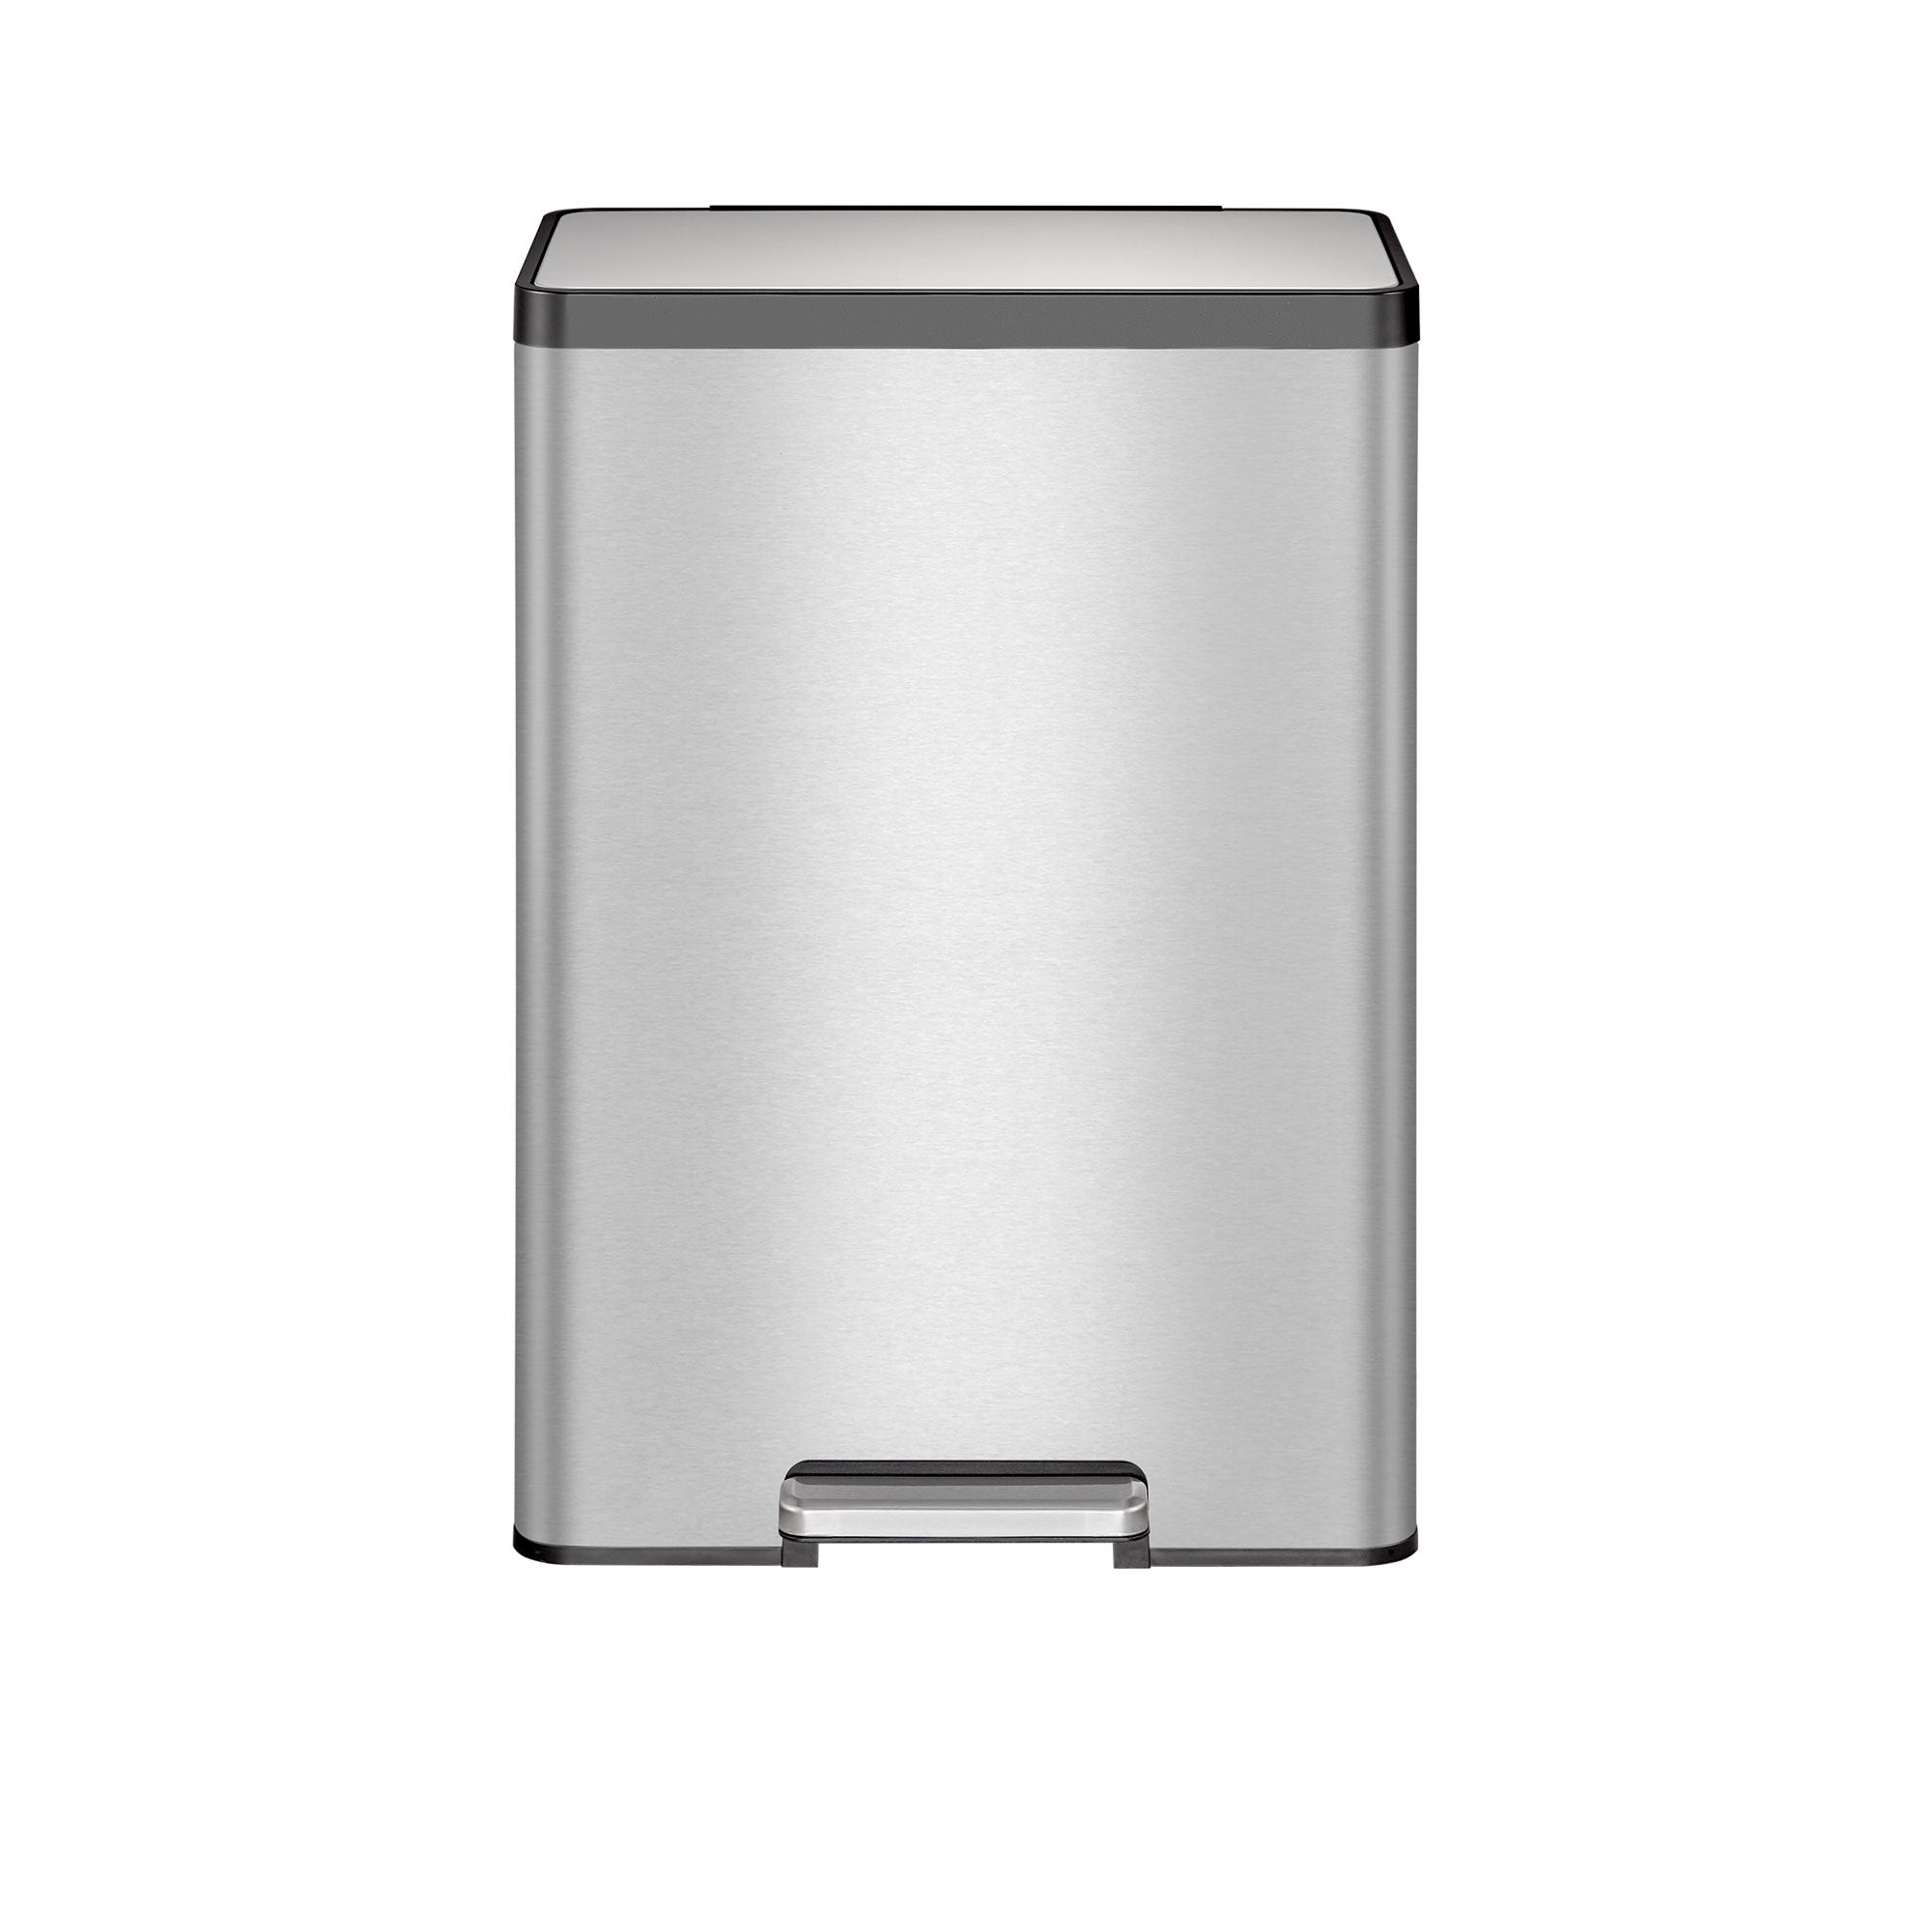 EKO EcoCasa II Step Can 20L+20L Stainless Steel